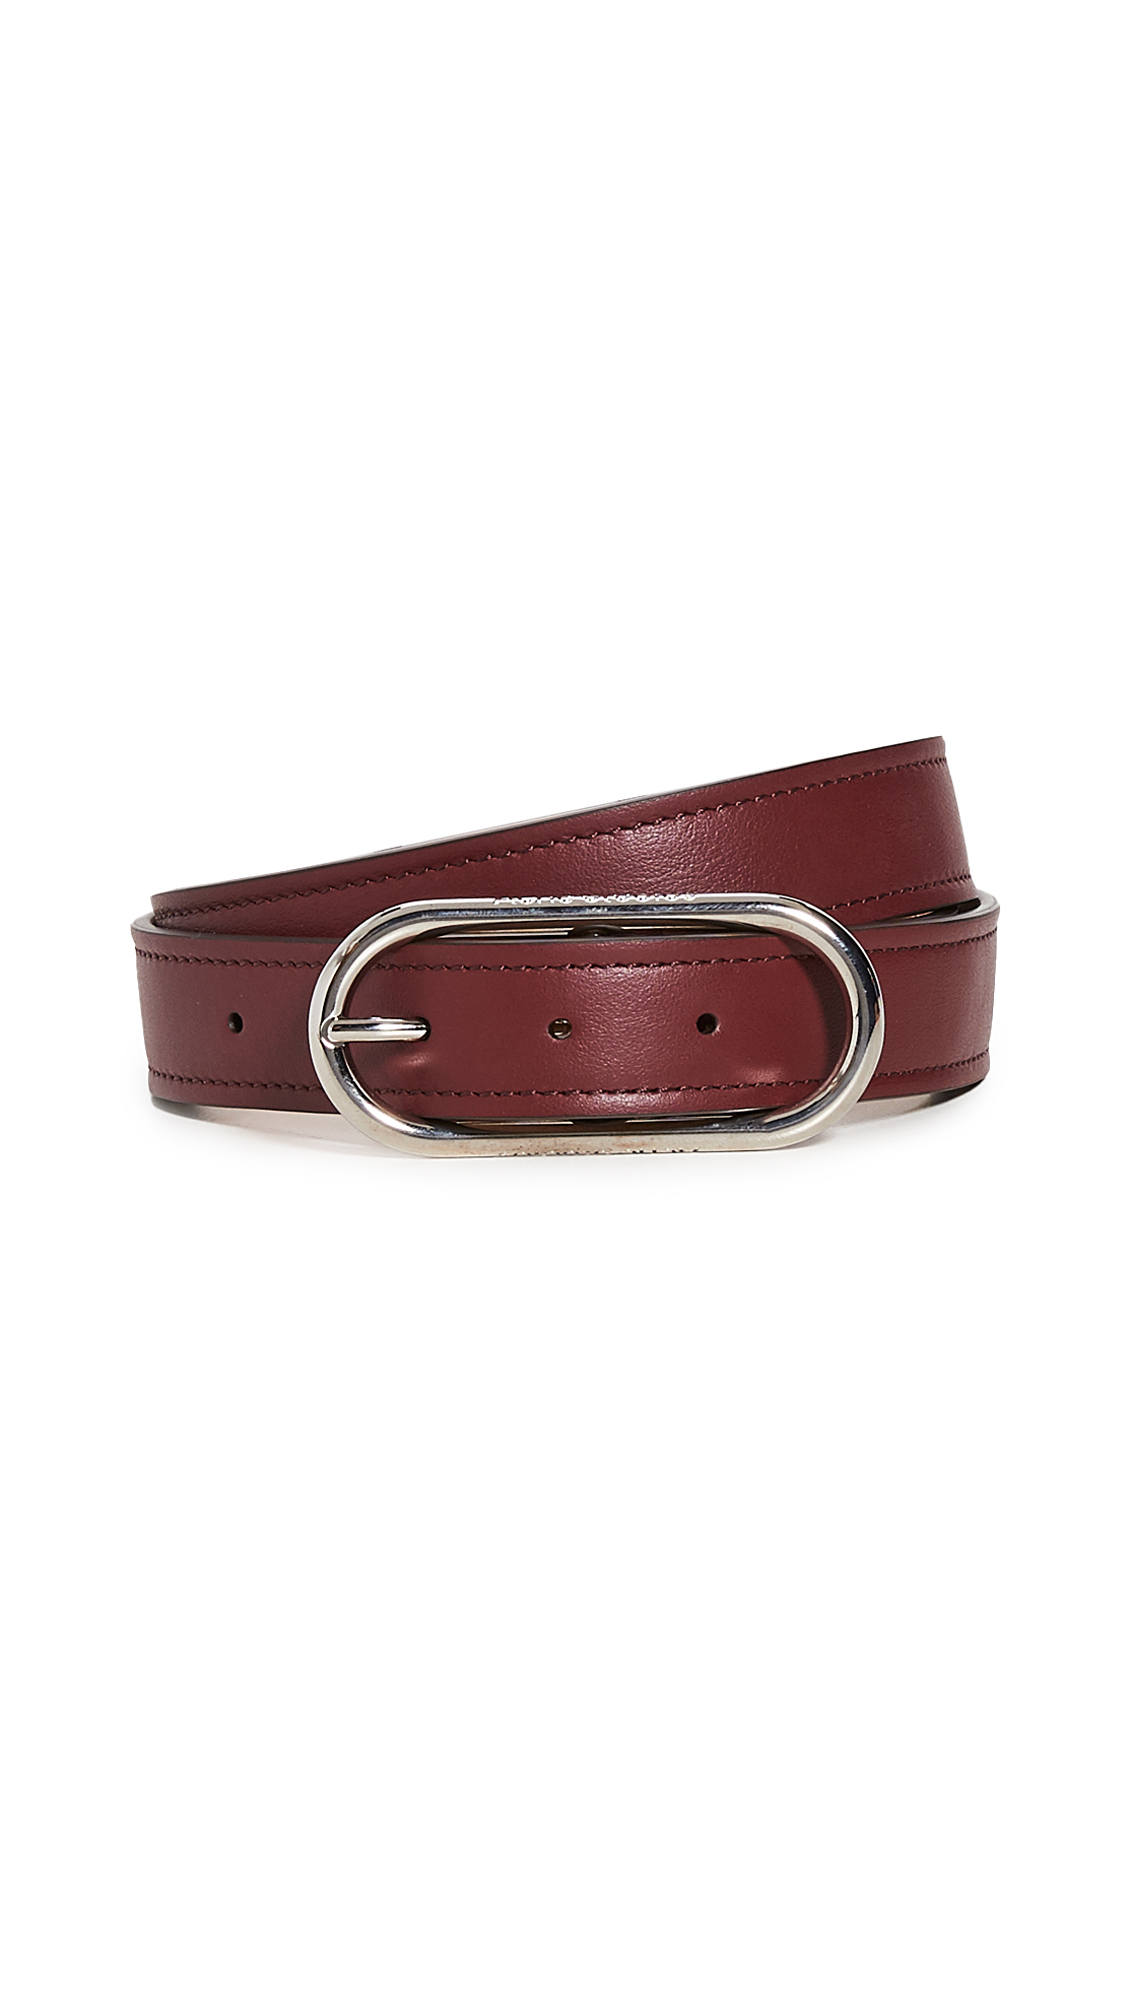 Acne Studios Masculine Thin Belt